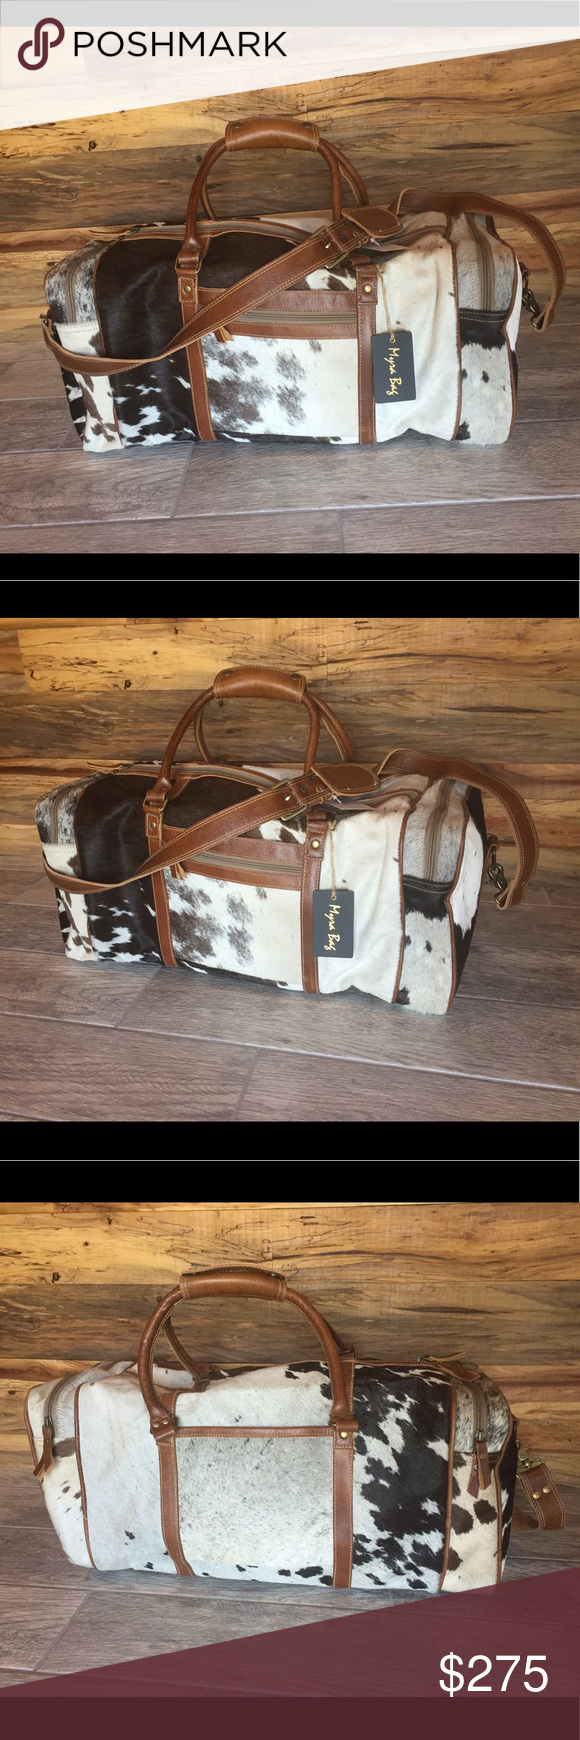 Cowhide Duffle Bag Brand new with tags Myra Cowhide duffel bag. White and  black with brown leather accents. 24 inches wide 9.5 inches deep 10 inches  high ... 41a5f0b384228